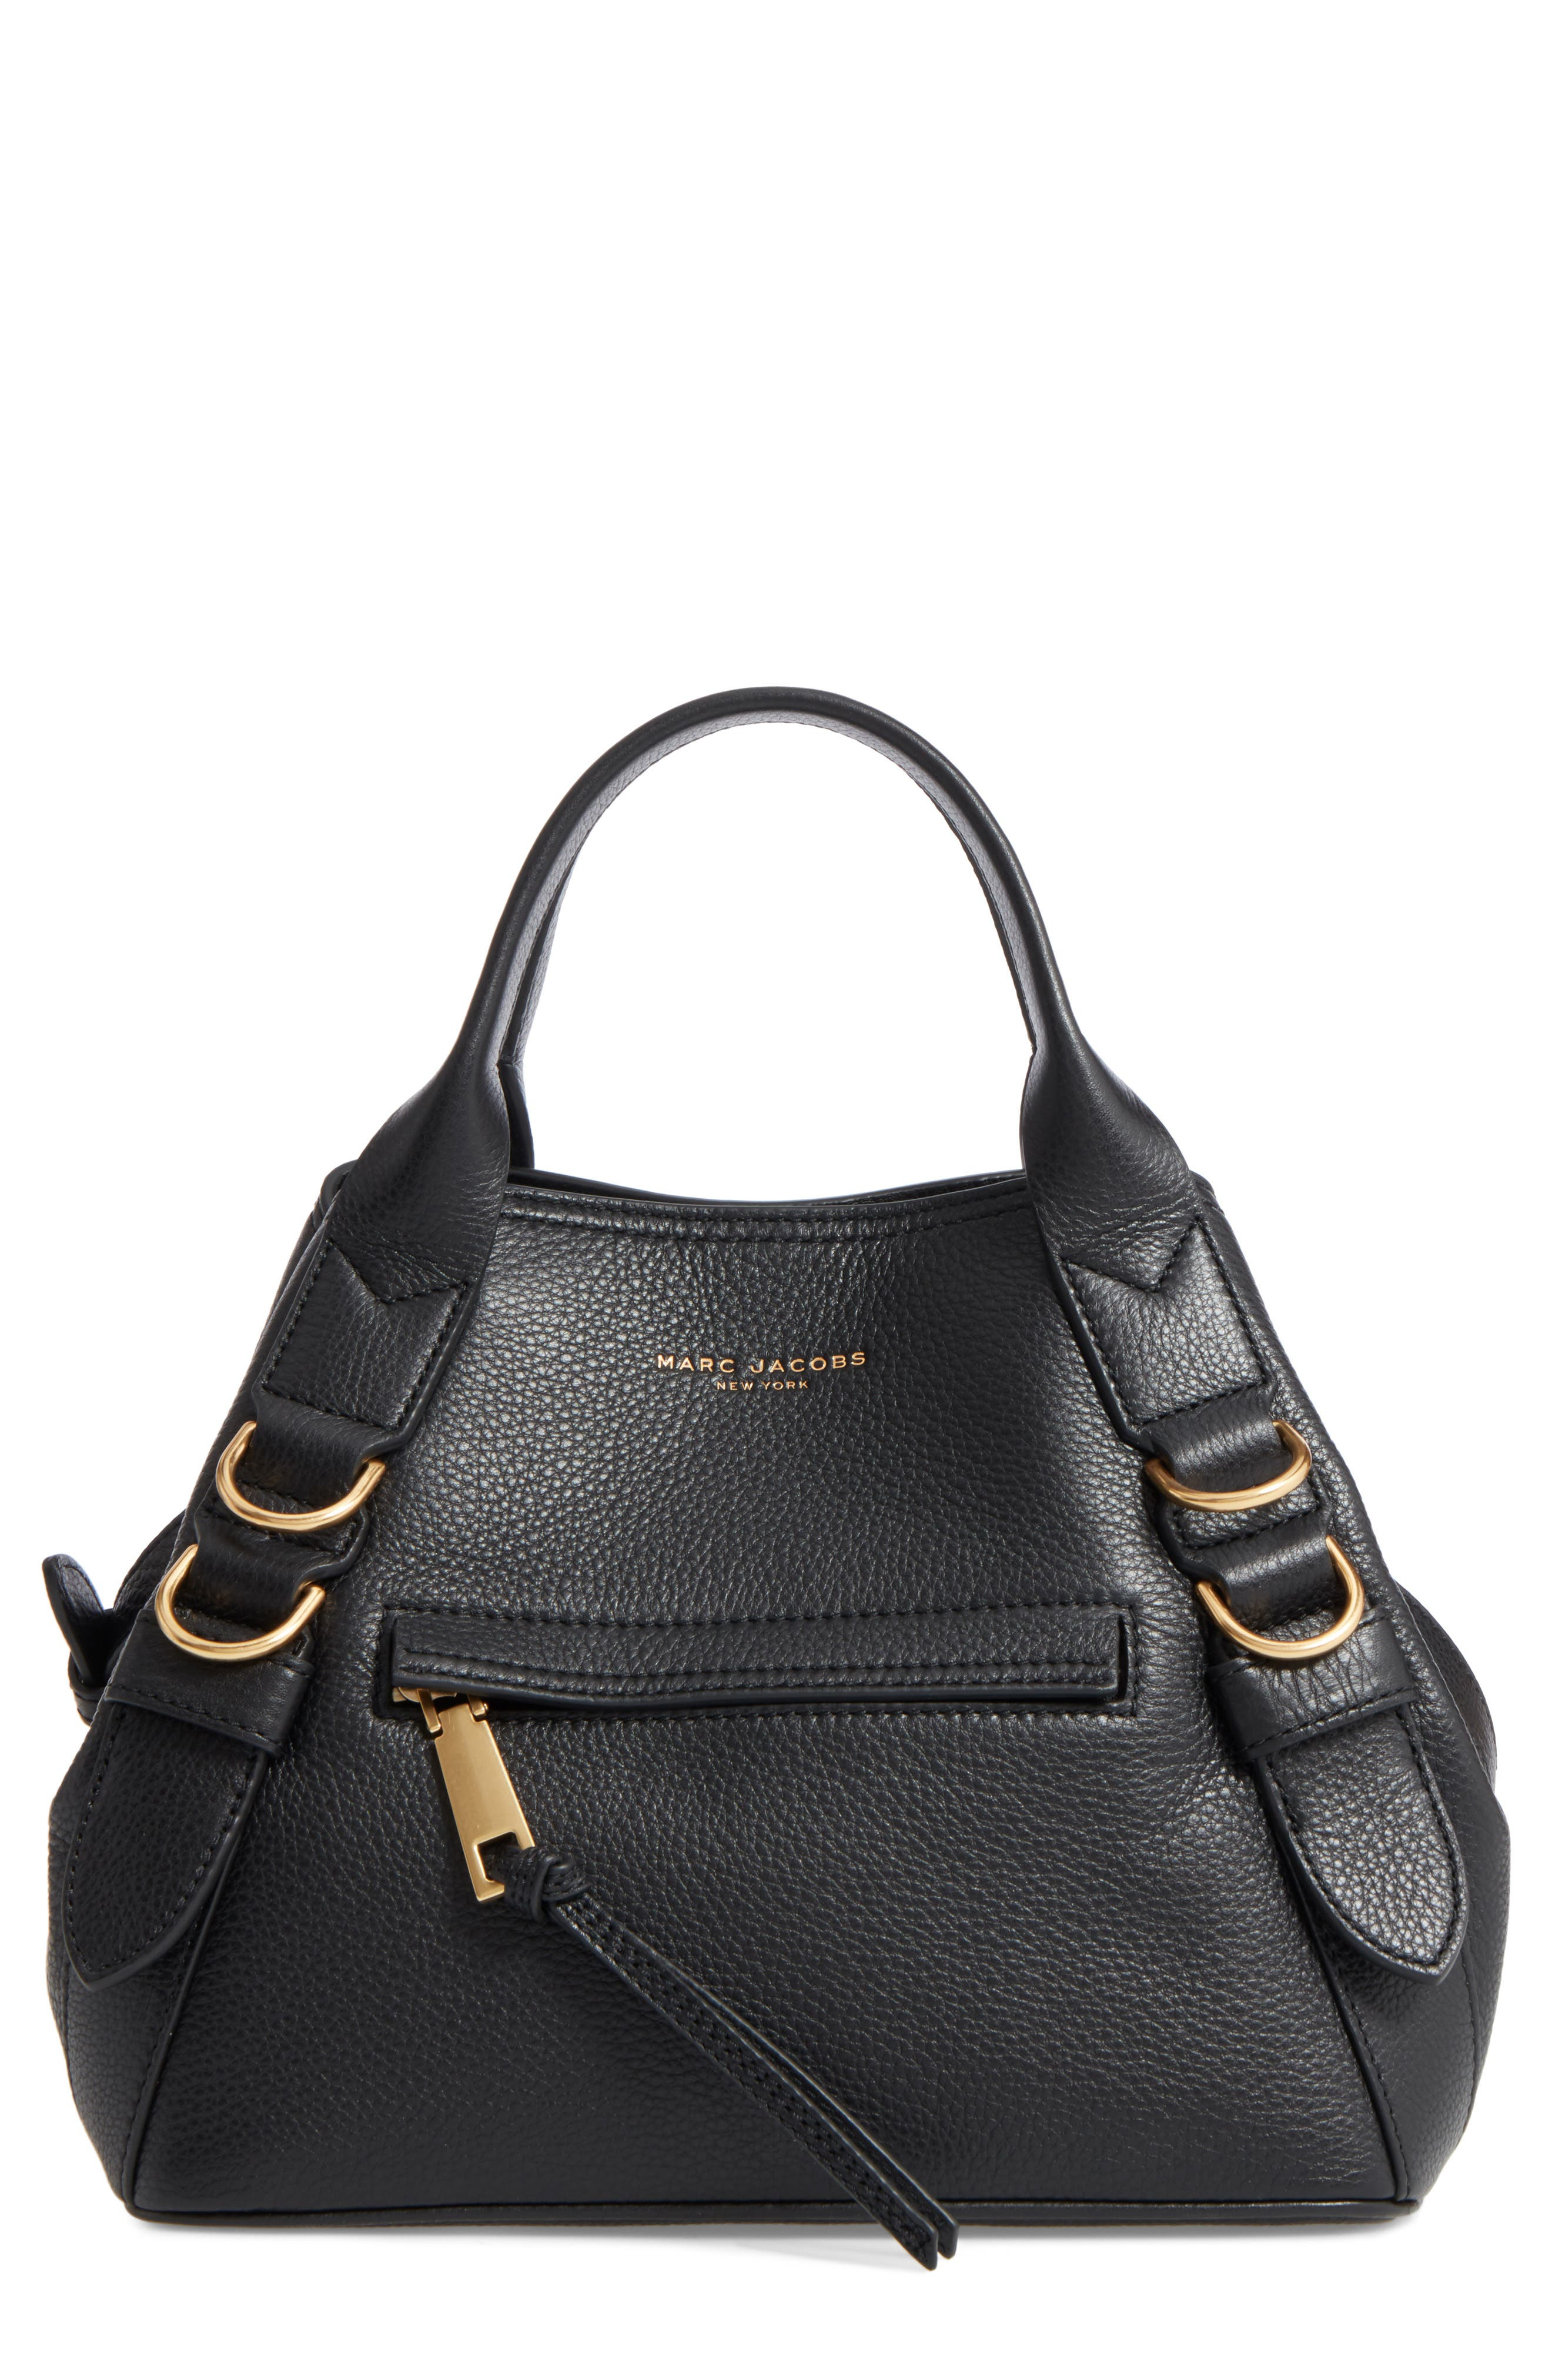 MARC JACOBS,                             The Small Anchor Leather Shoulder Bag,                             Main thumbnail 1, color,                             001